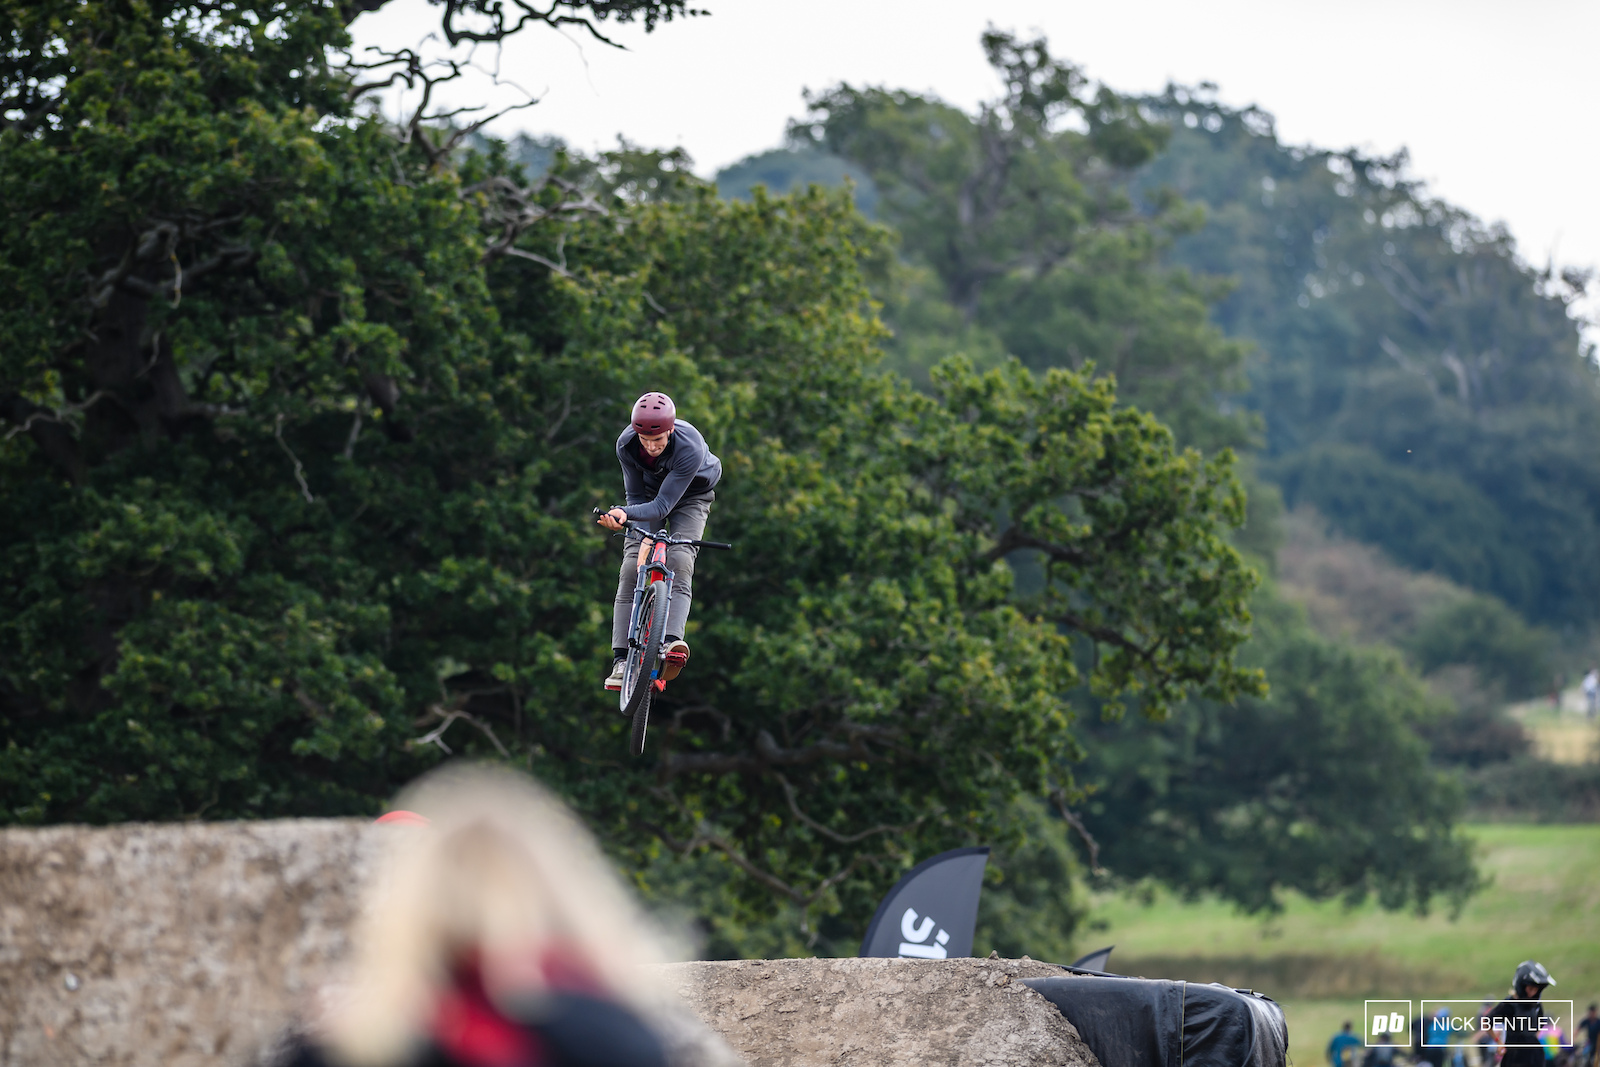 Riders starting through combinations with a suicide no hander to bar spin